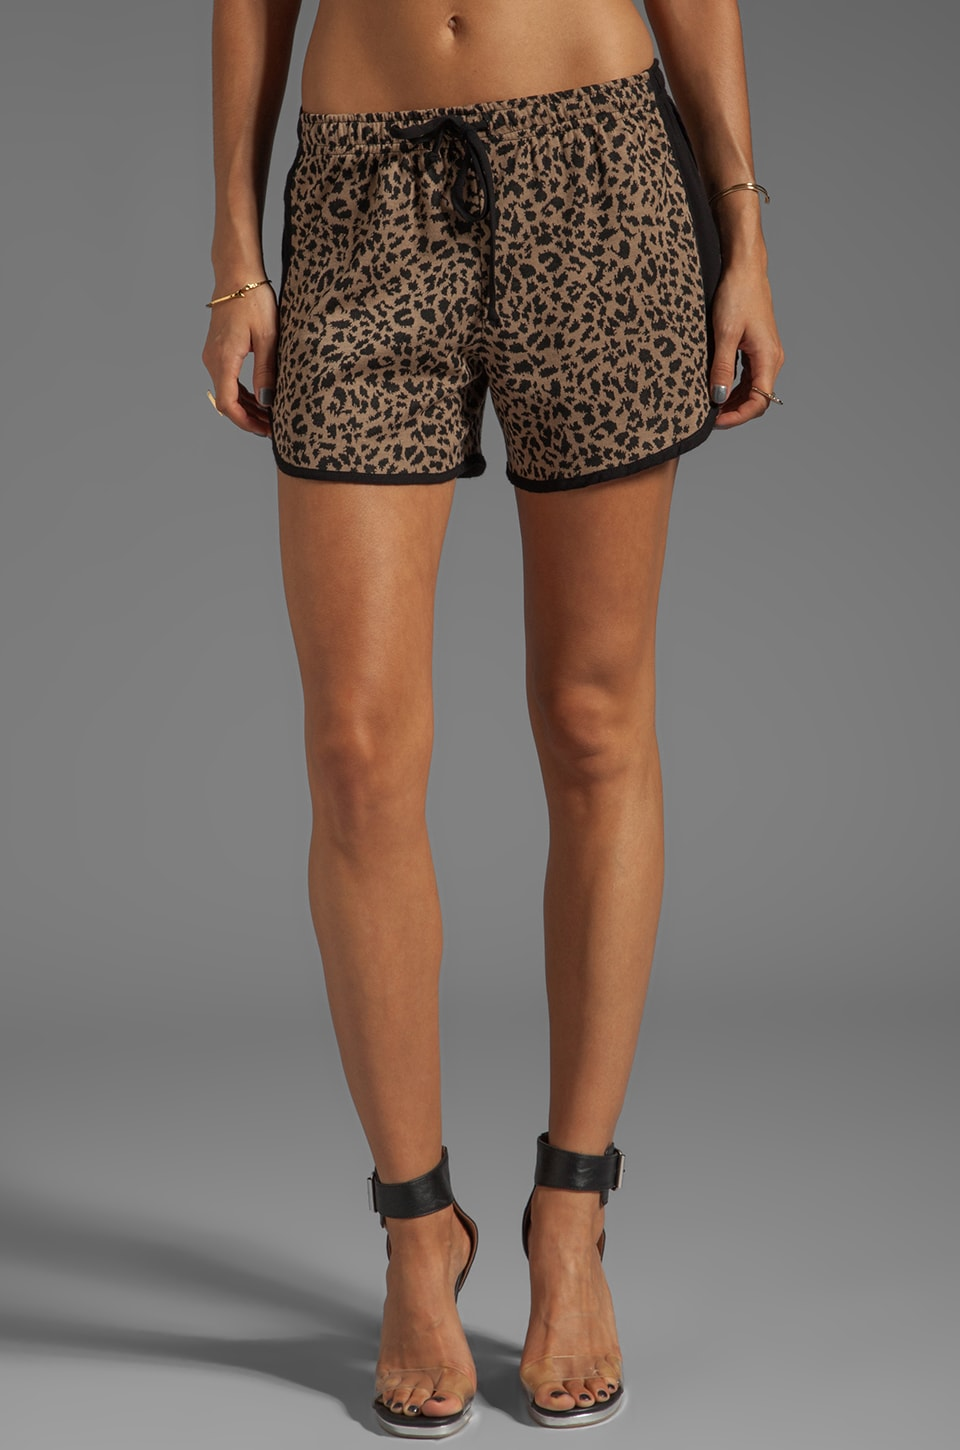 A Fine Line Ben Shorts in Leopard Tan